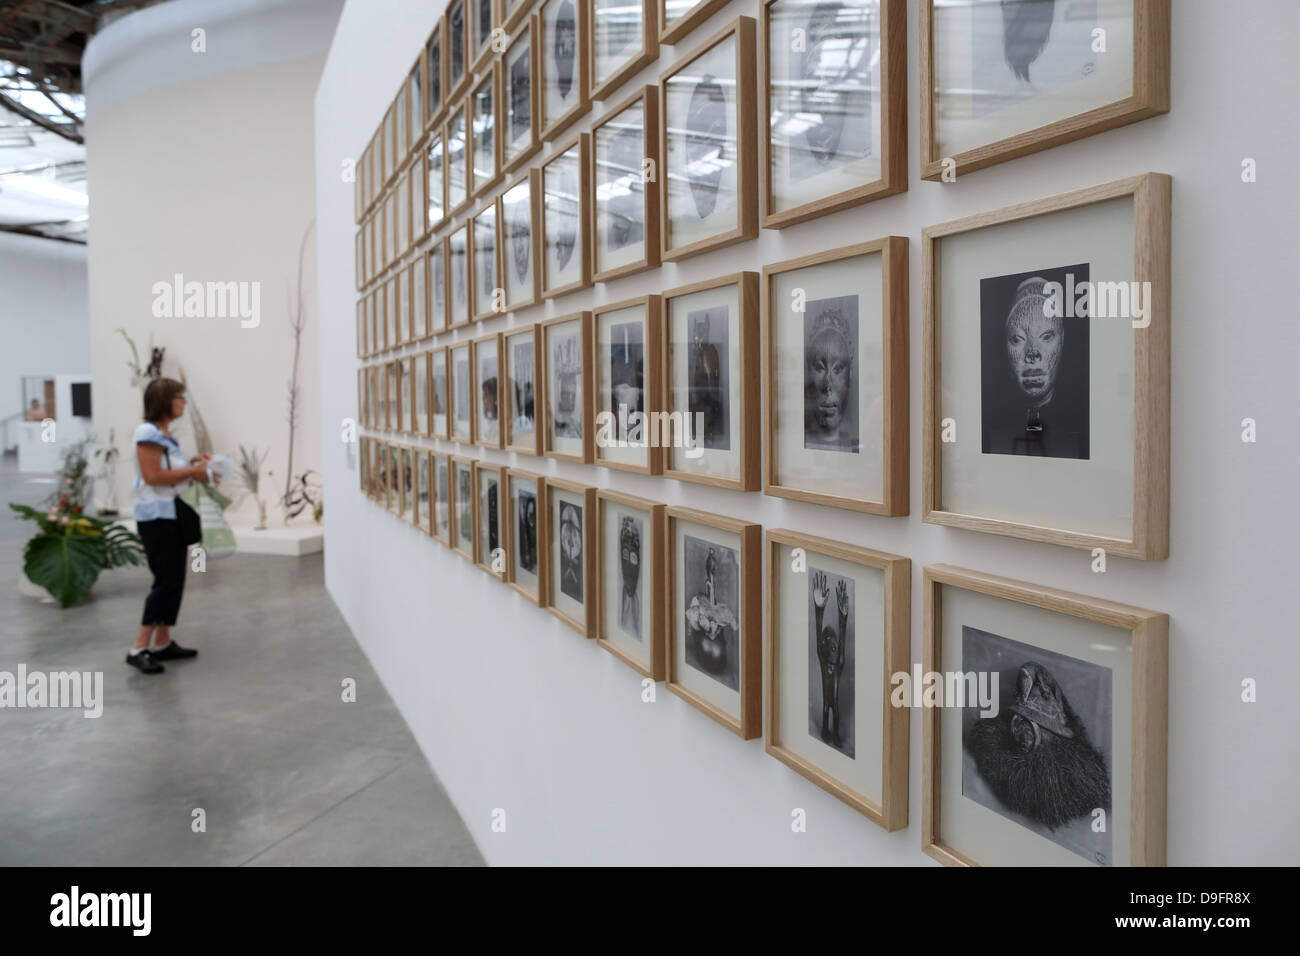 Visitor at an exhibition in the Museum of Modern Art of the city of Paris, Palais de Tokyo, Paris, France - Stock Image